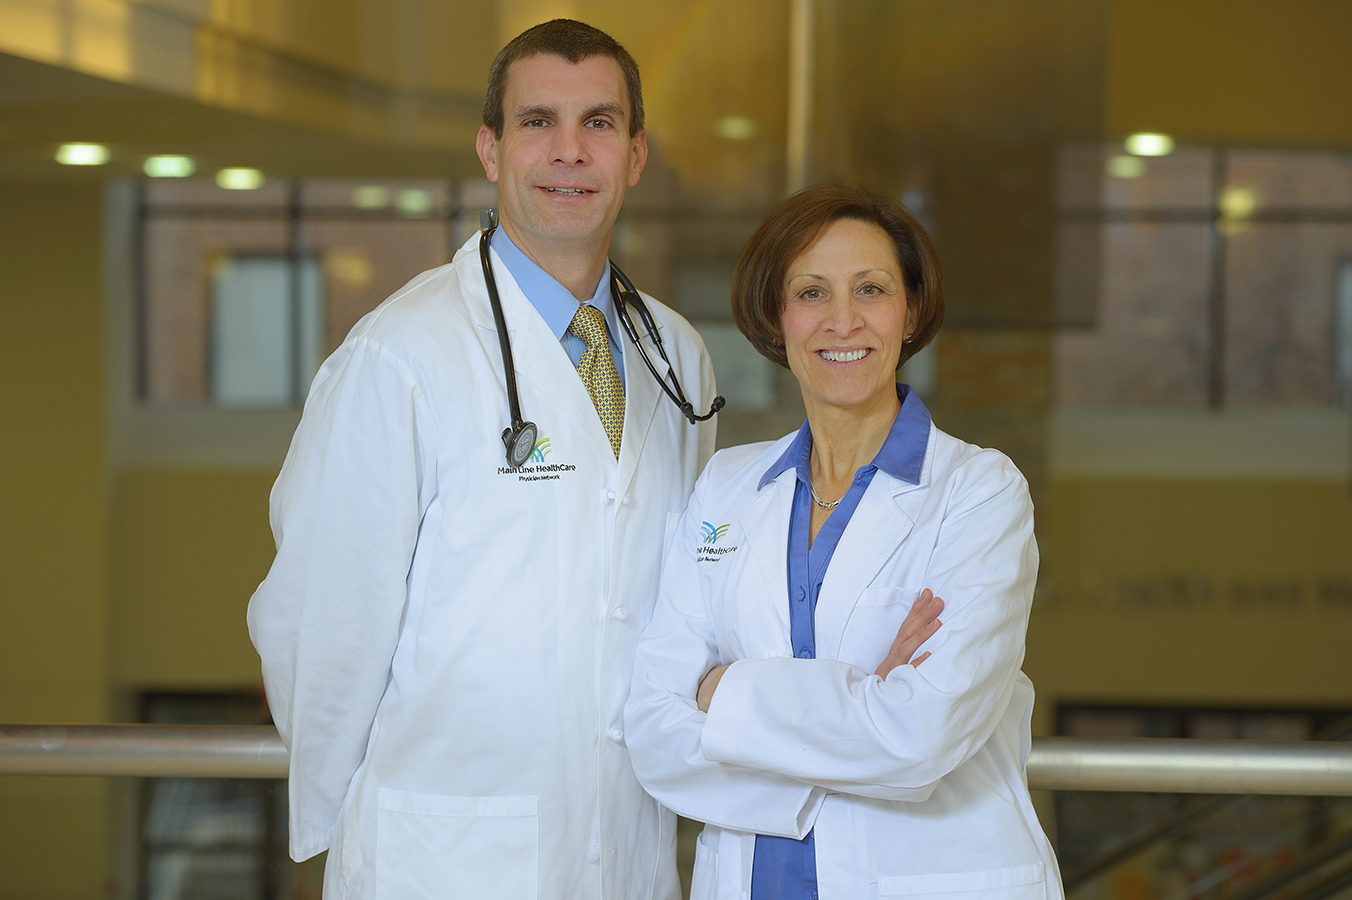 Andrew B. Ulichney, MD and Frances Pluchino, CRNP